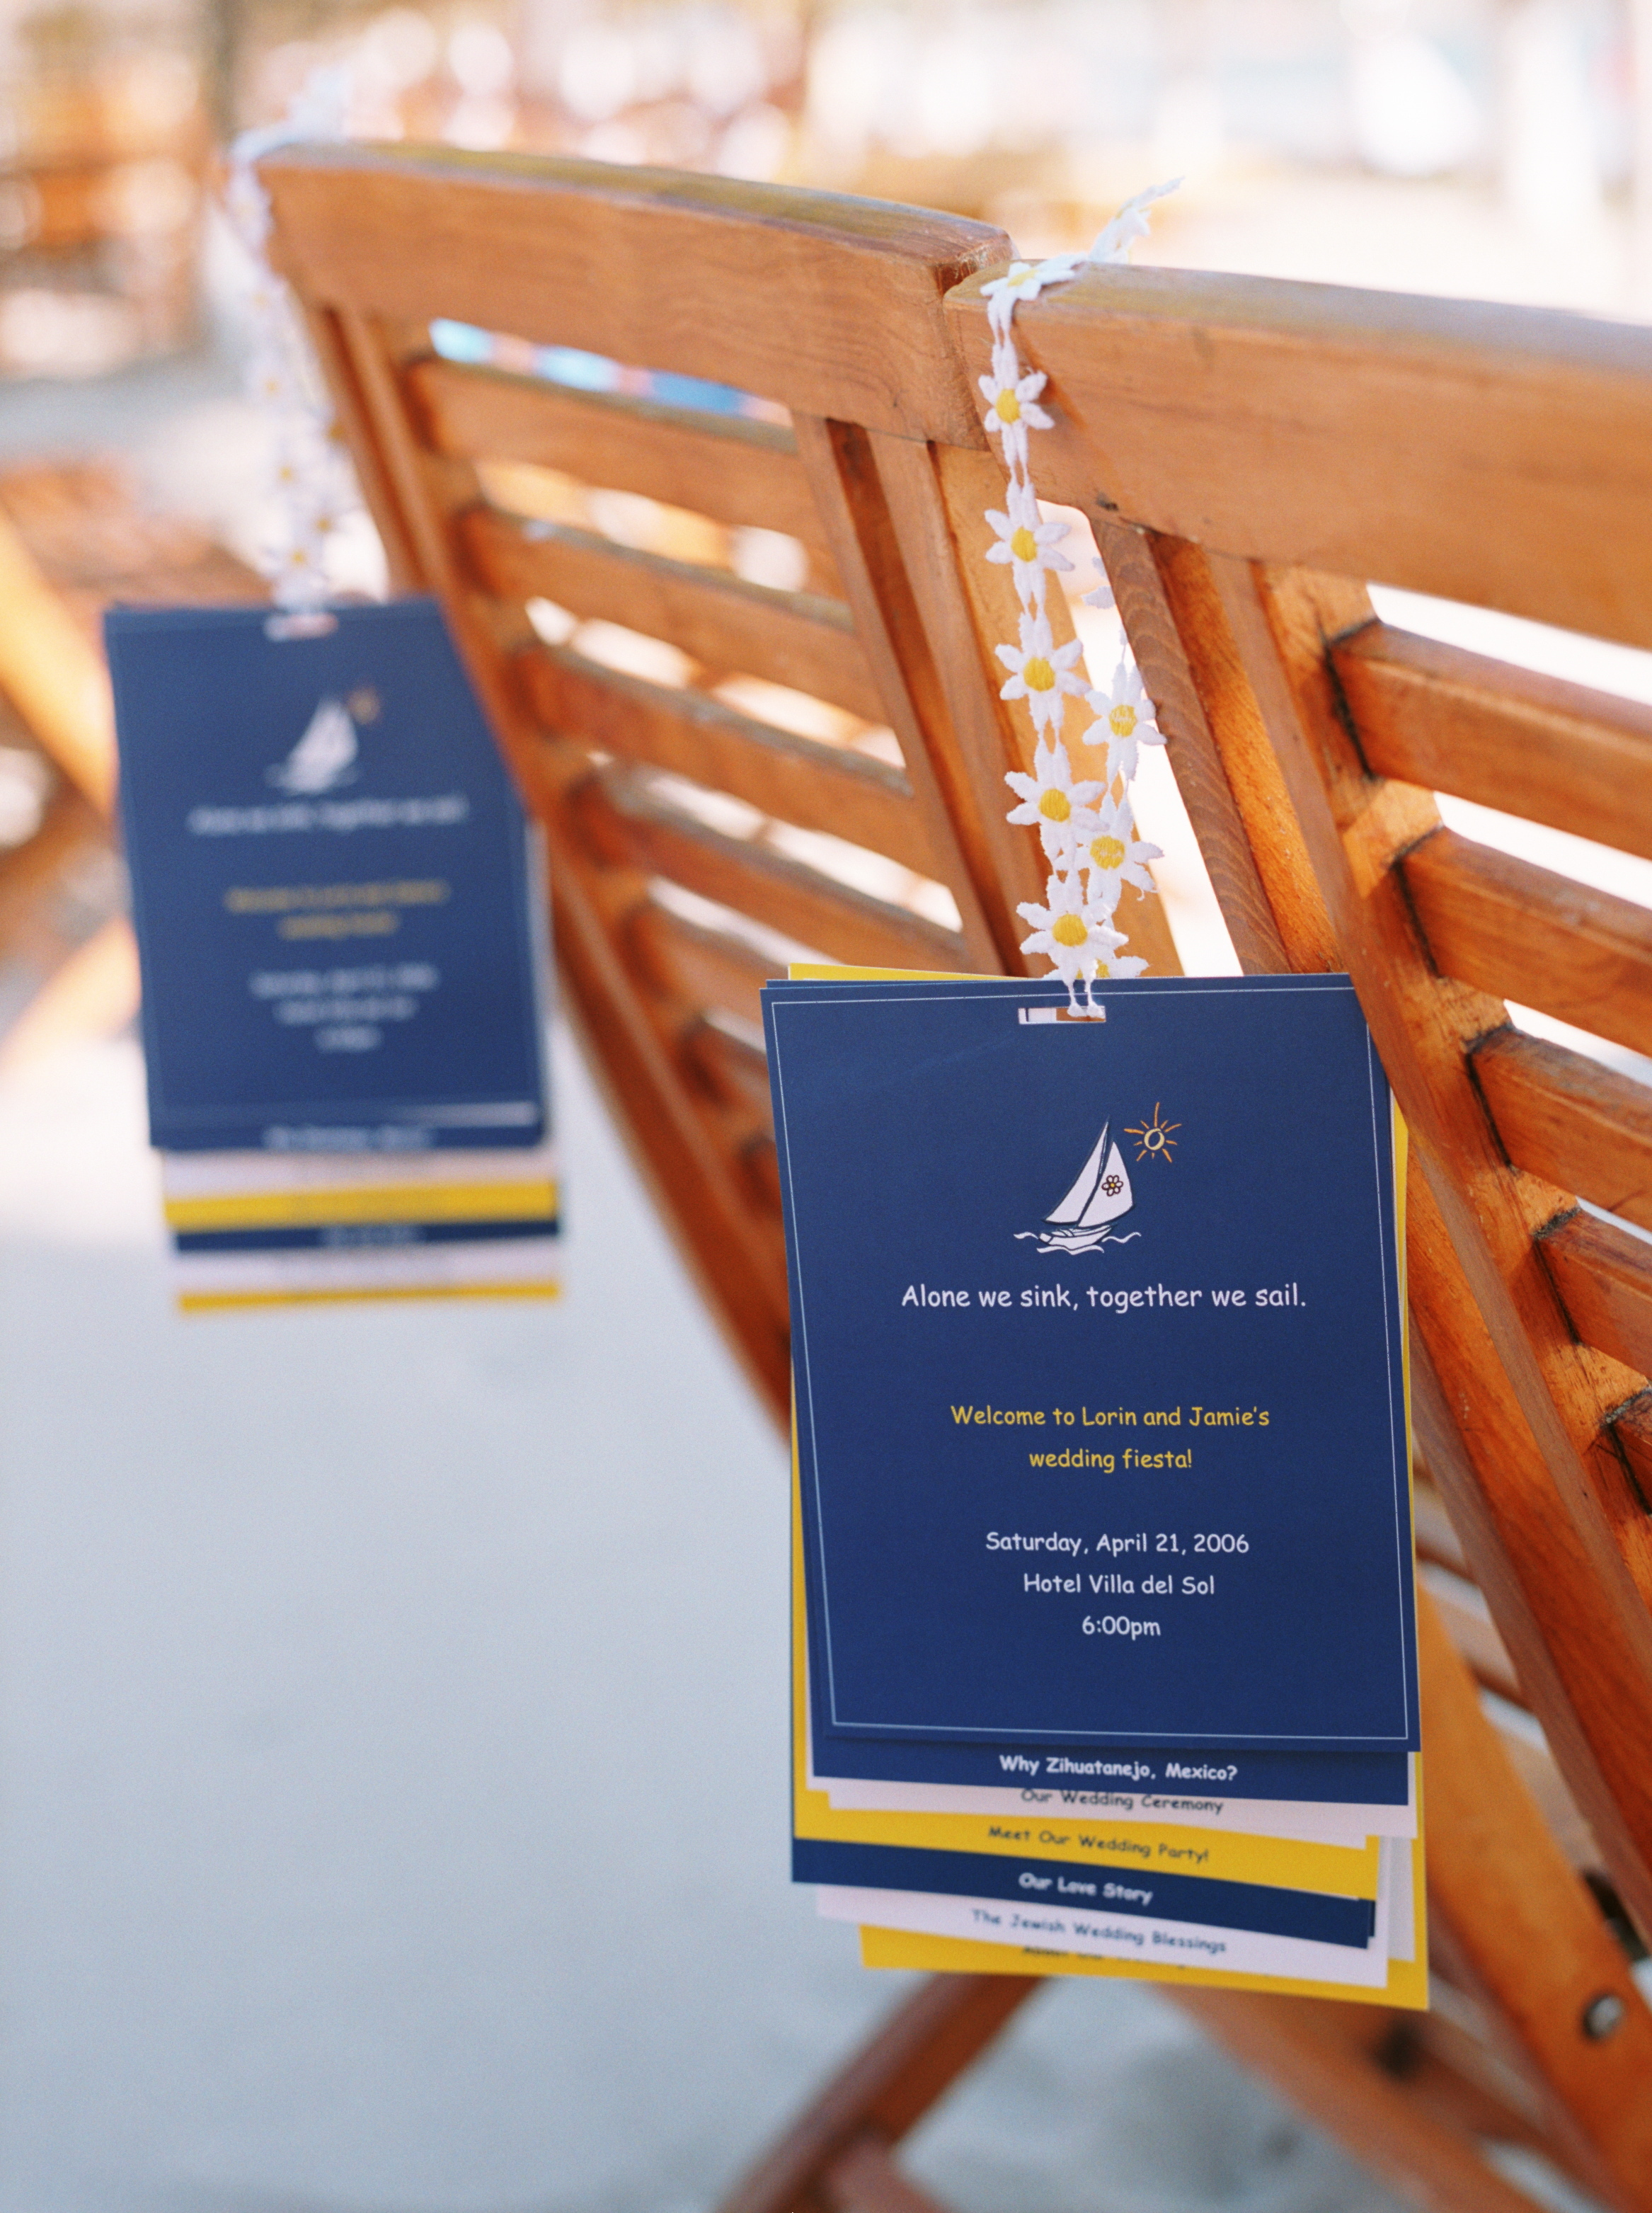 Flowers & Decor, Decor, Stationery, Destinations, yellow, blue, Destination Weddings, Mexico, Ceremony Programs, Programs, Wedding, Nautical, Navy, Mexico weddings, The tides ziahuatanejo